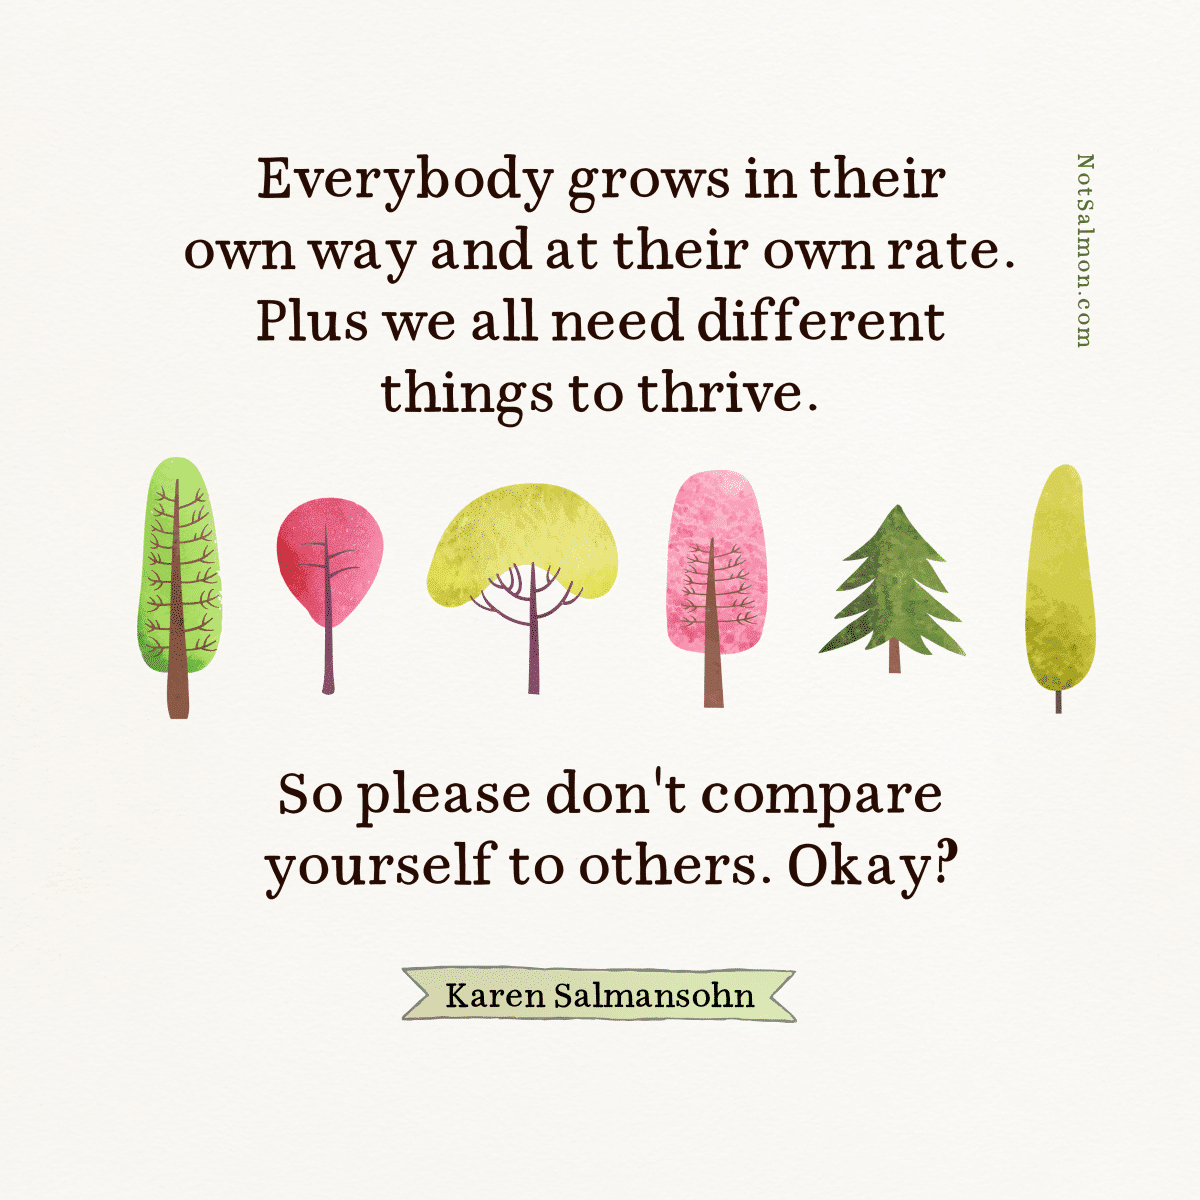 everybody grows at own rate